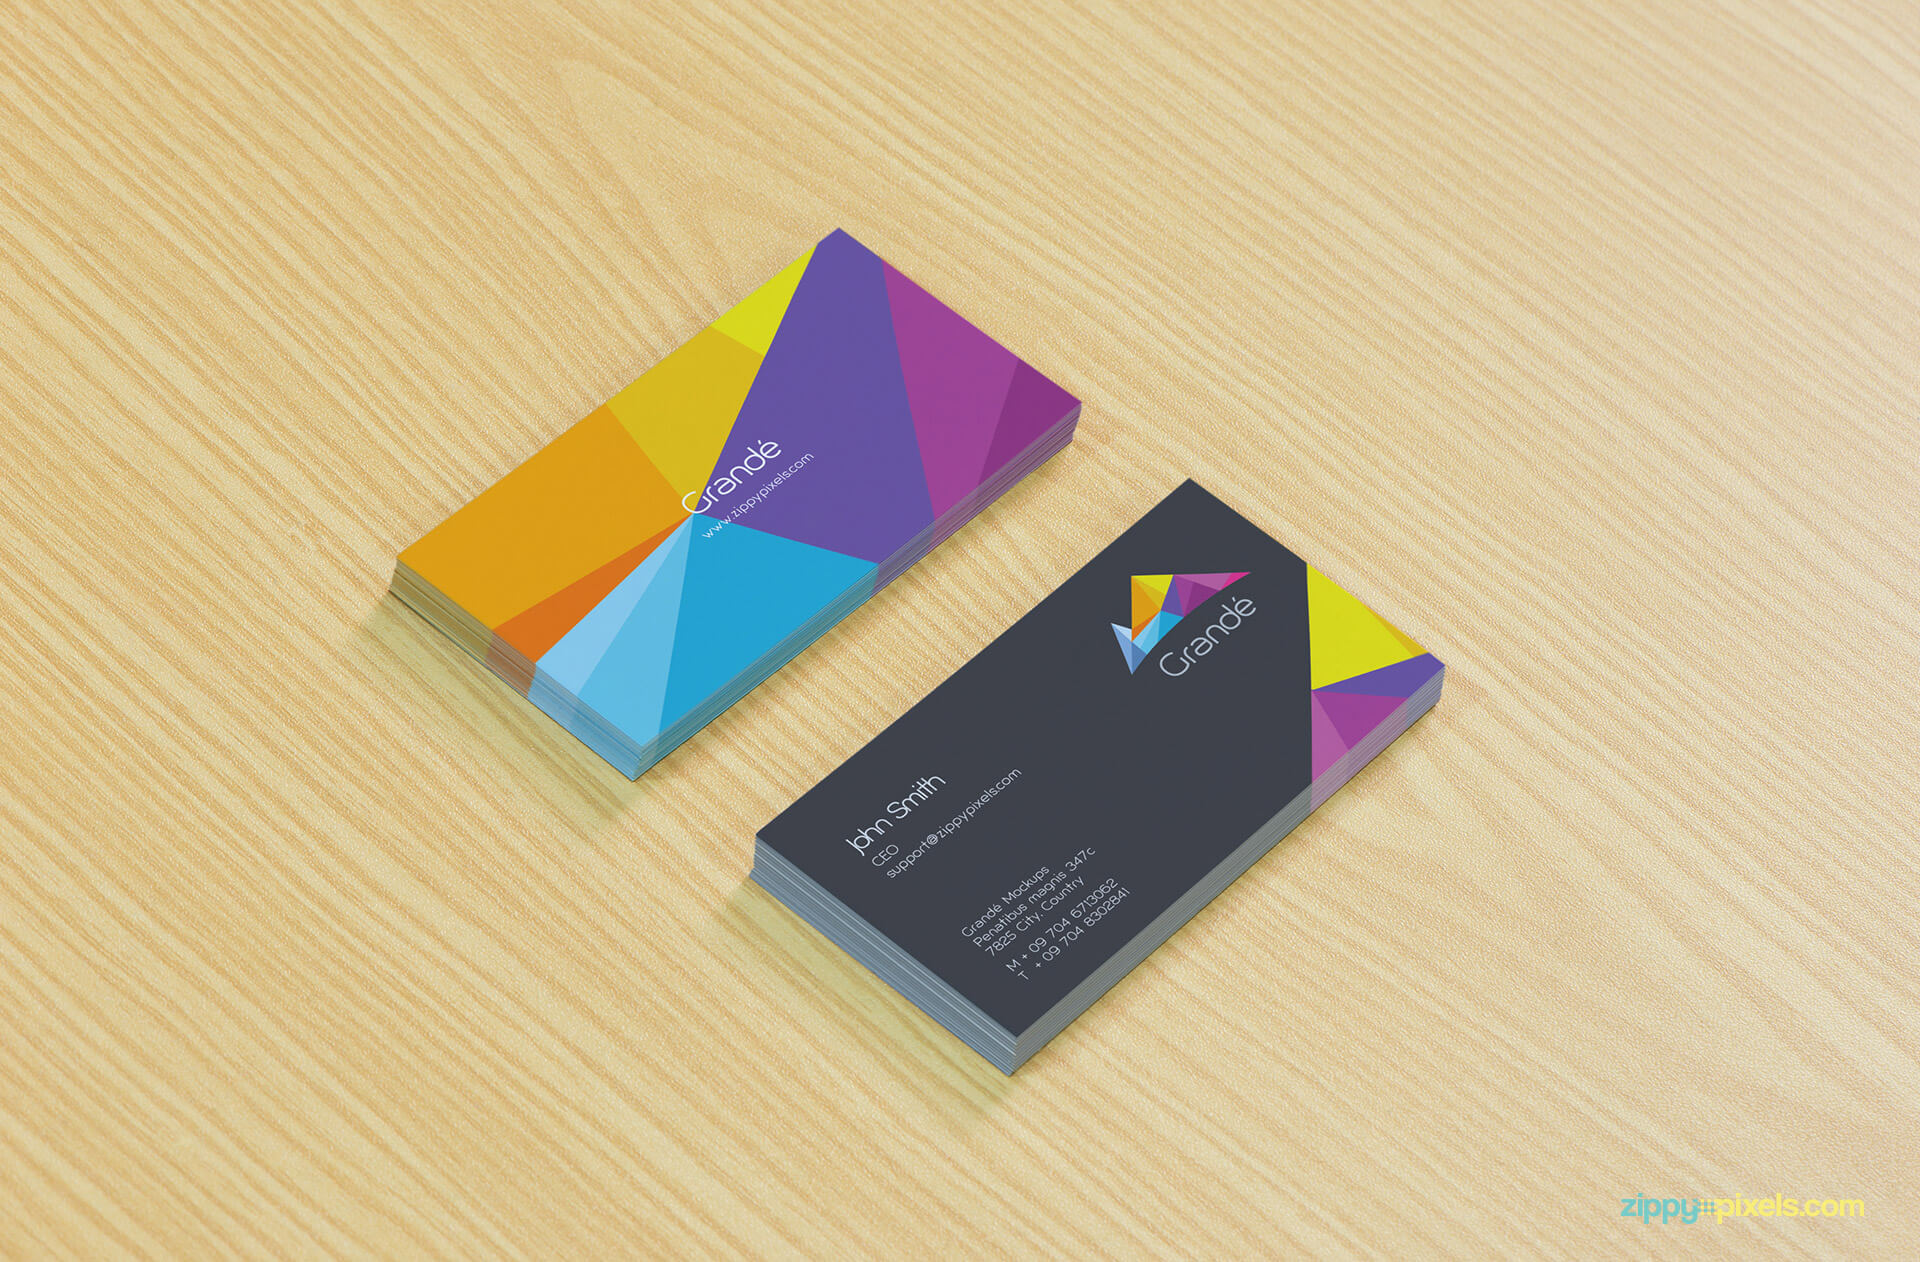 Business Cards Mockup on Table